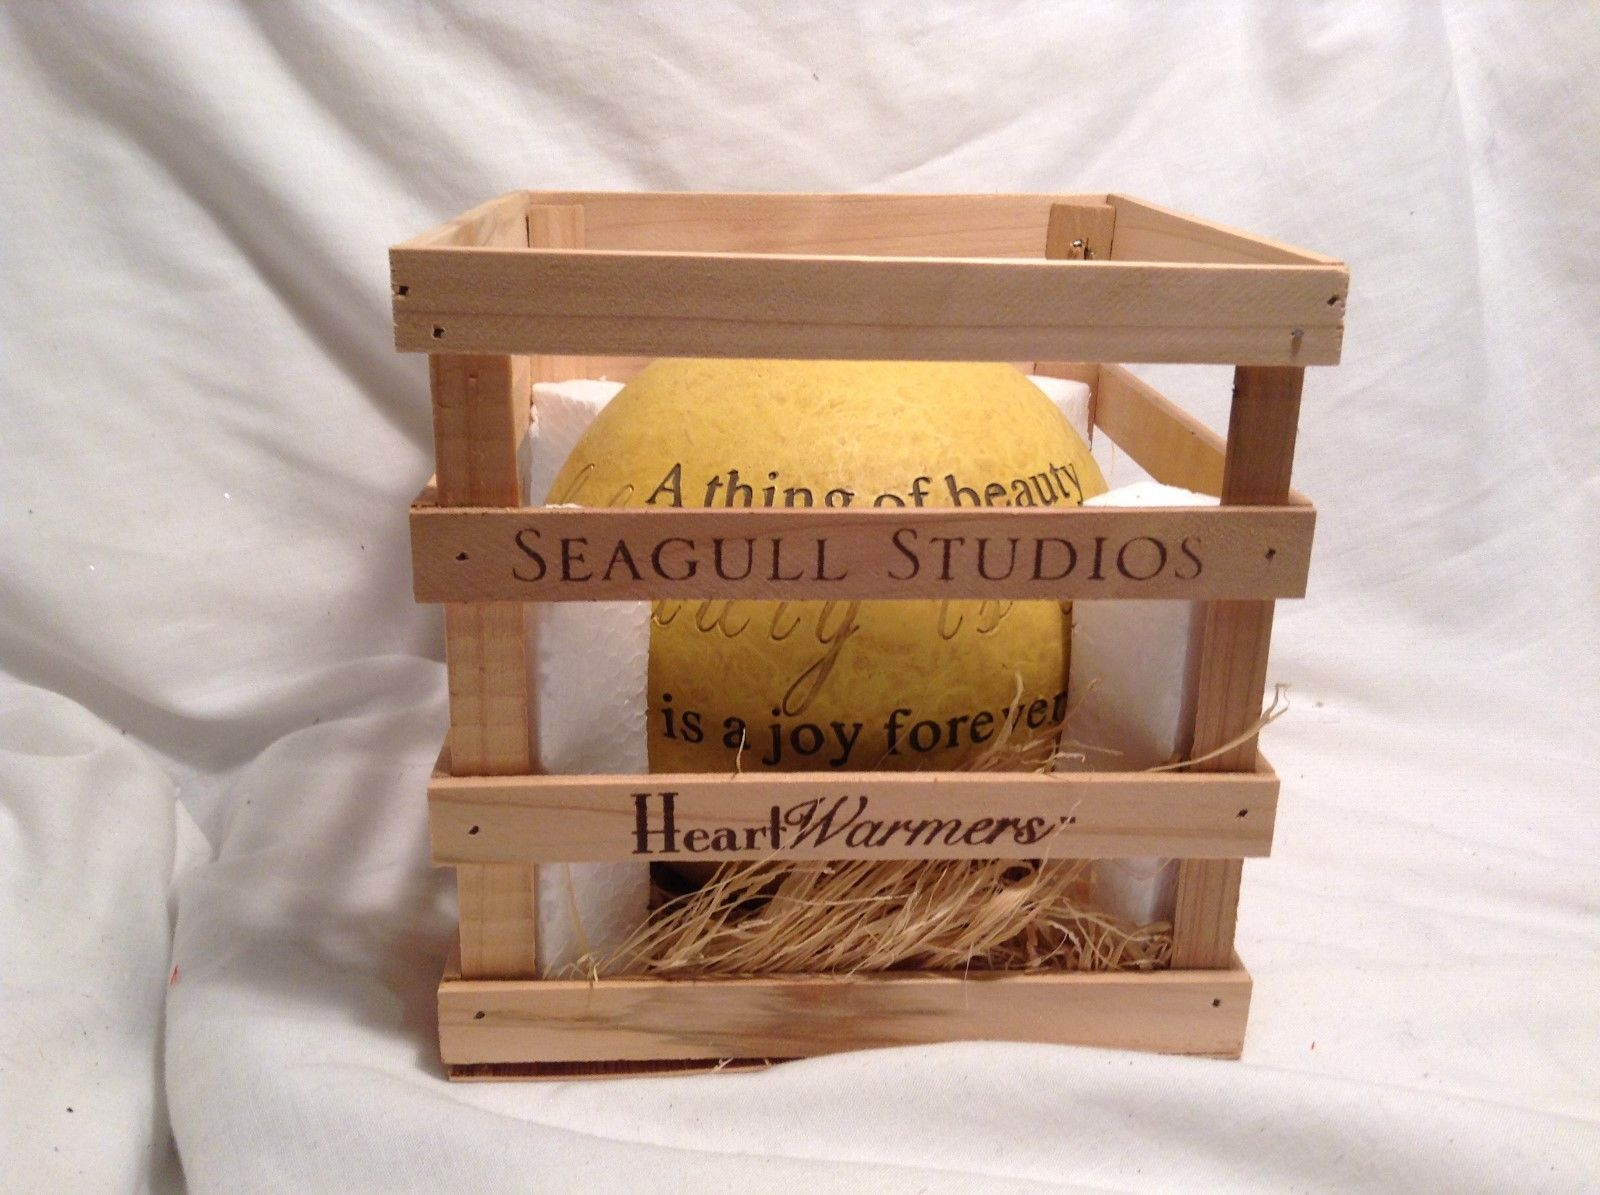 NEW Seagull Studios Heartwarmers Yellow Candle Holder w Wooden Crate